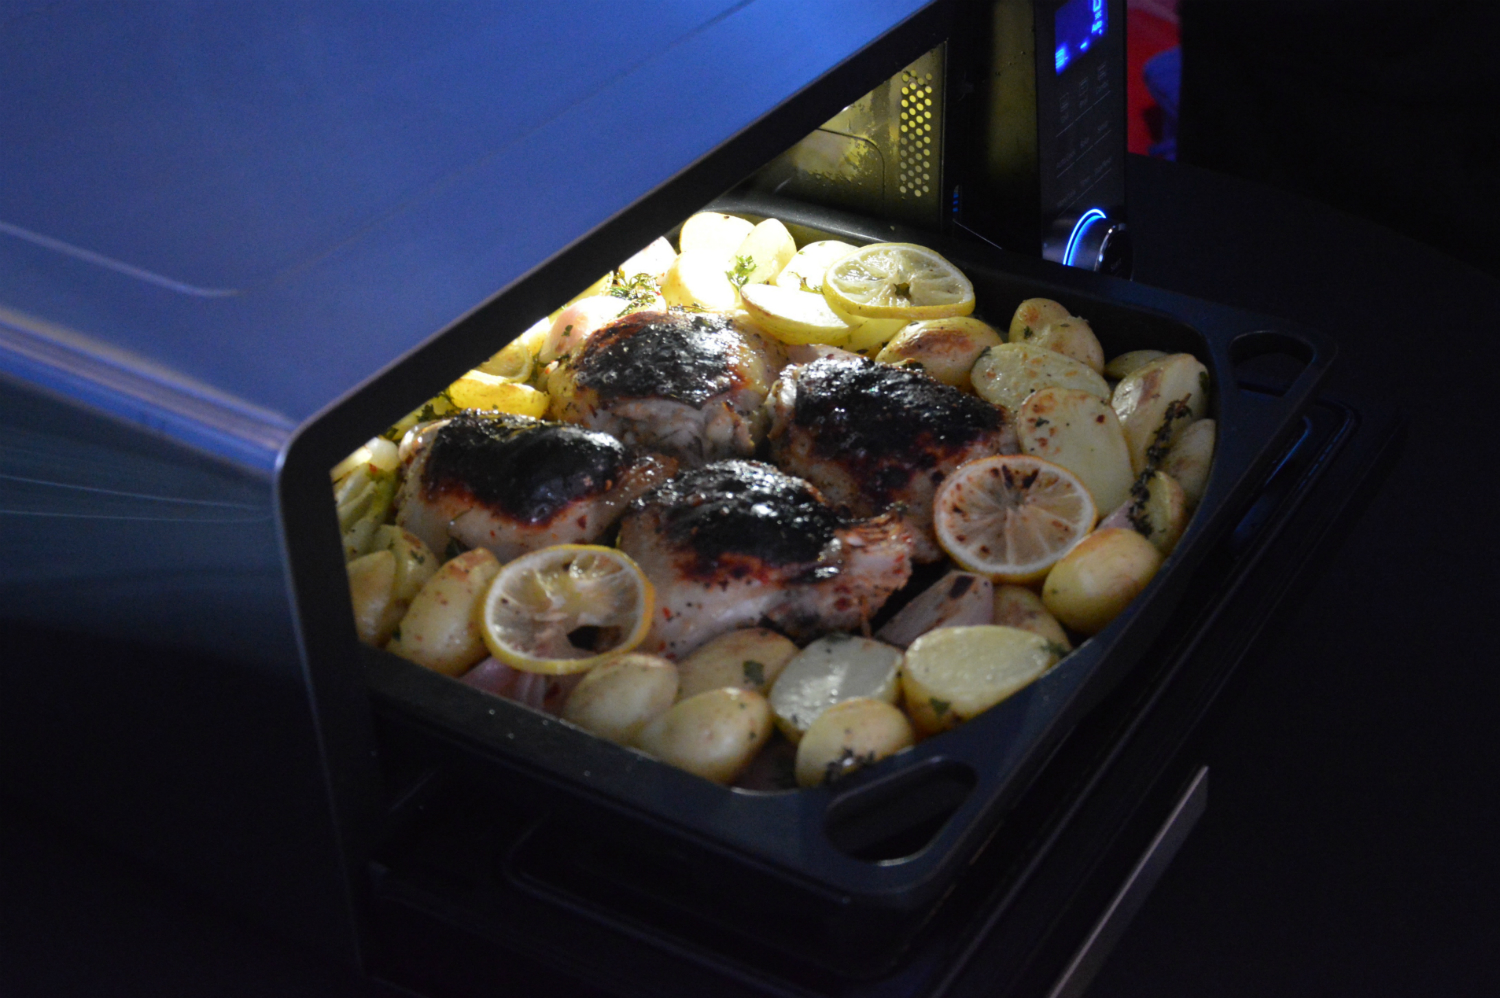 Panasonic?s countertop induction oven has dinner ready in a flash